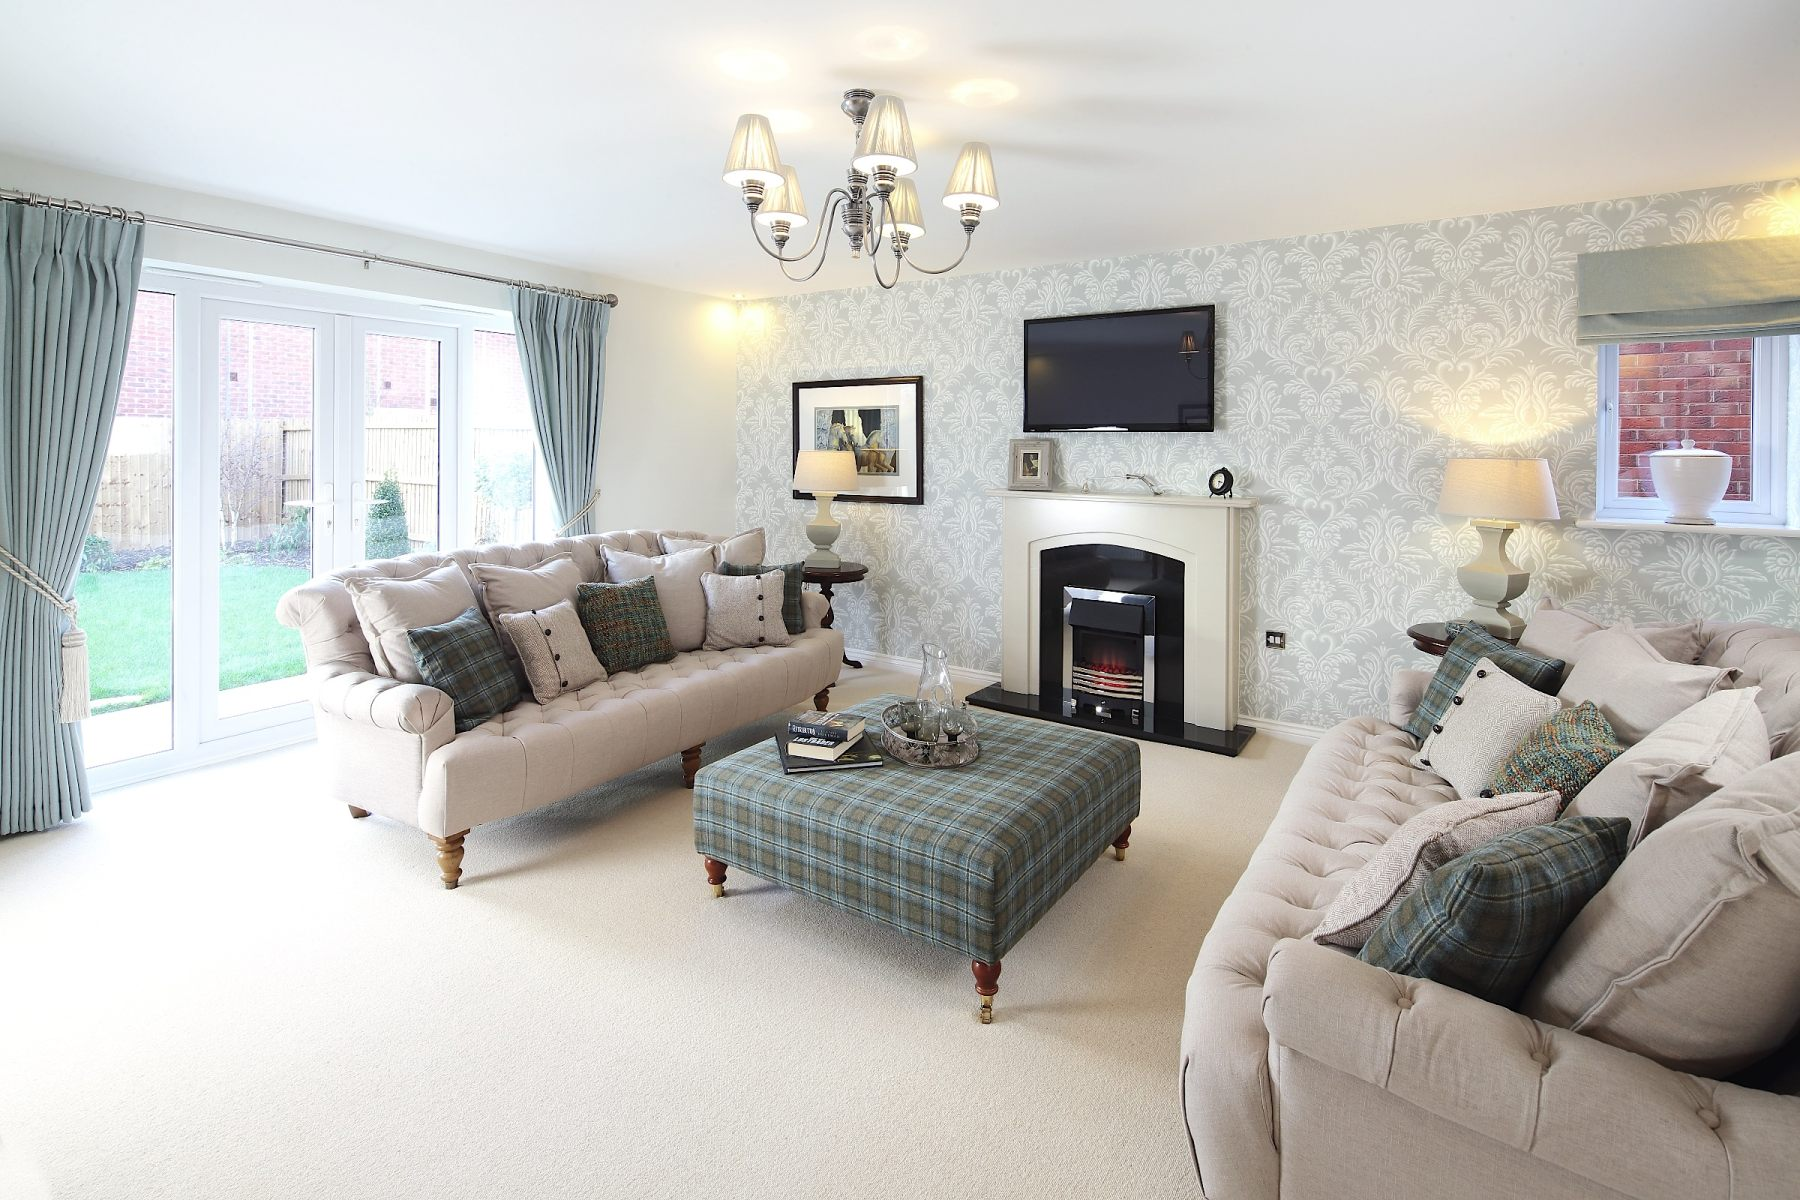 New homes in wem taylor wimpey for Show home living room ideas